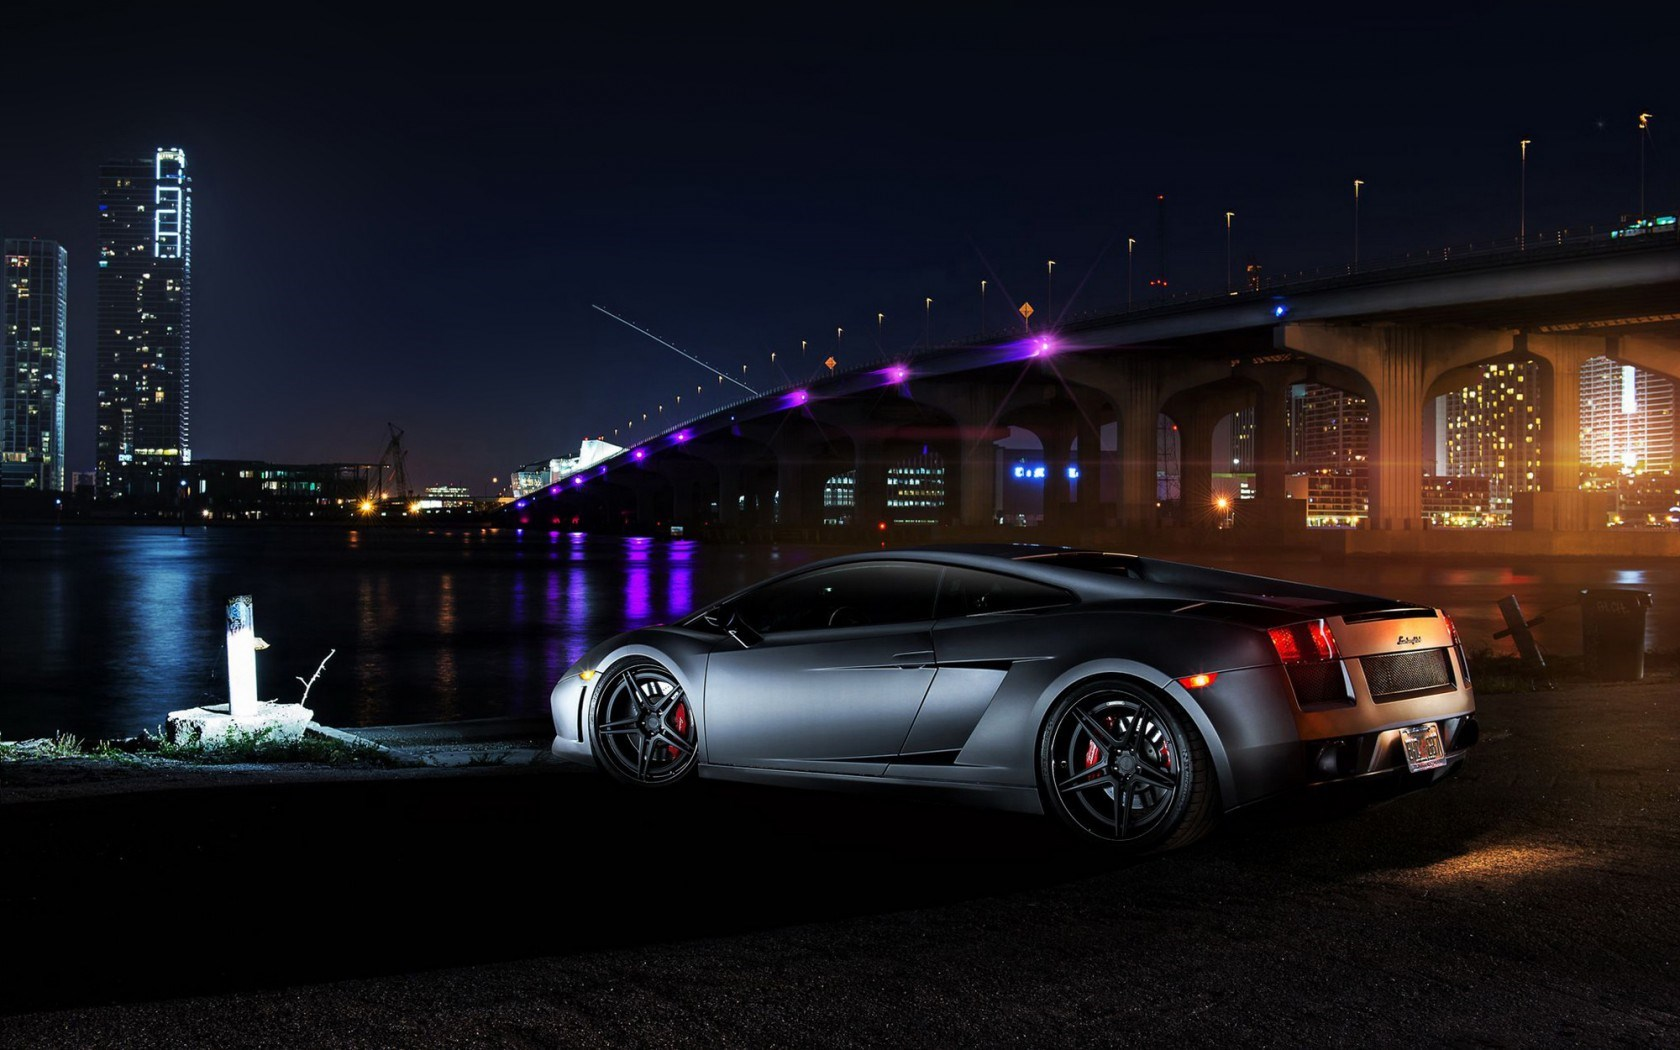 Lamborghini Gallardo Bridge Lights Night